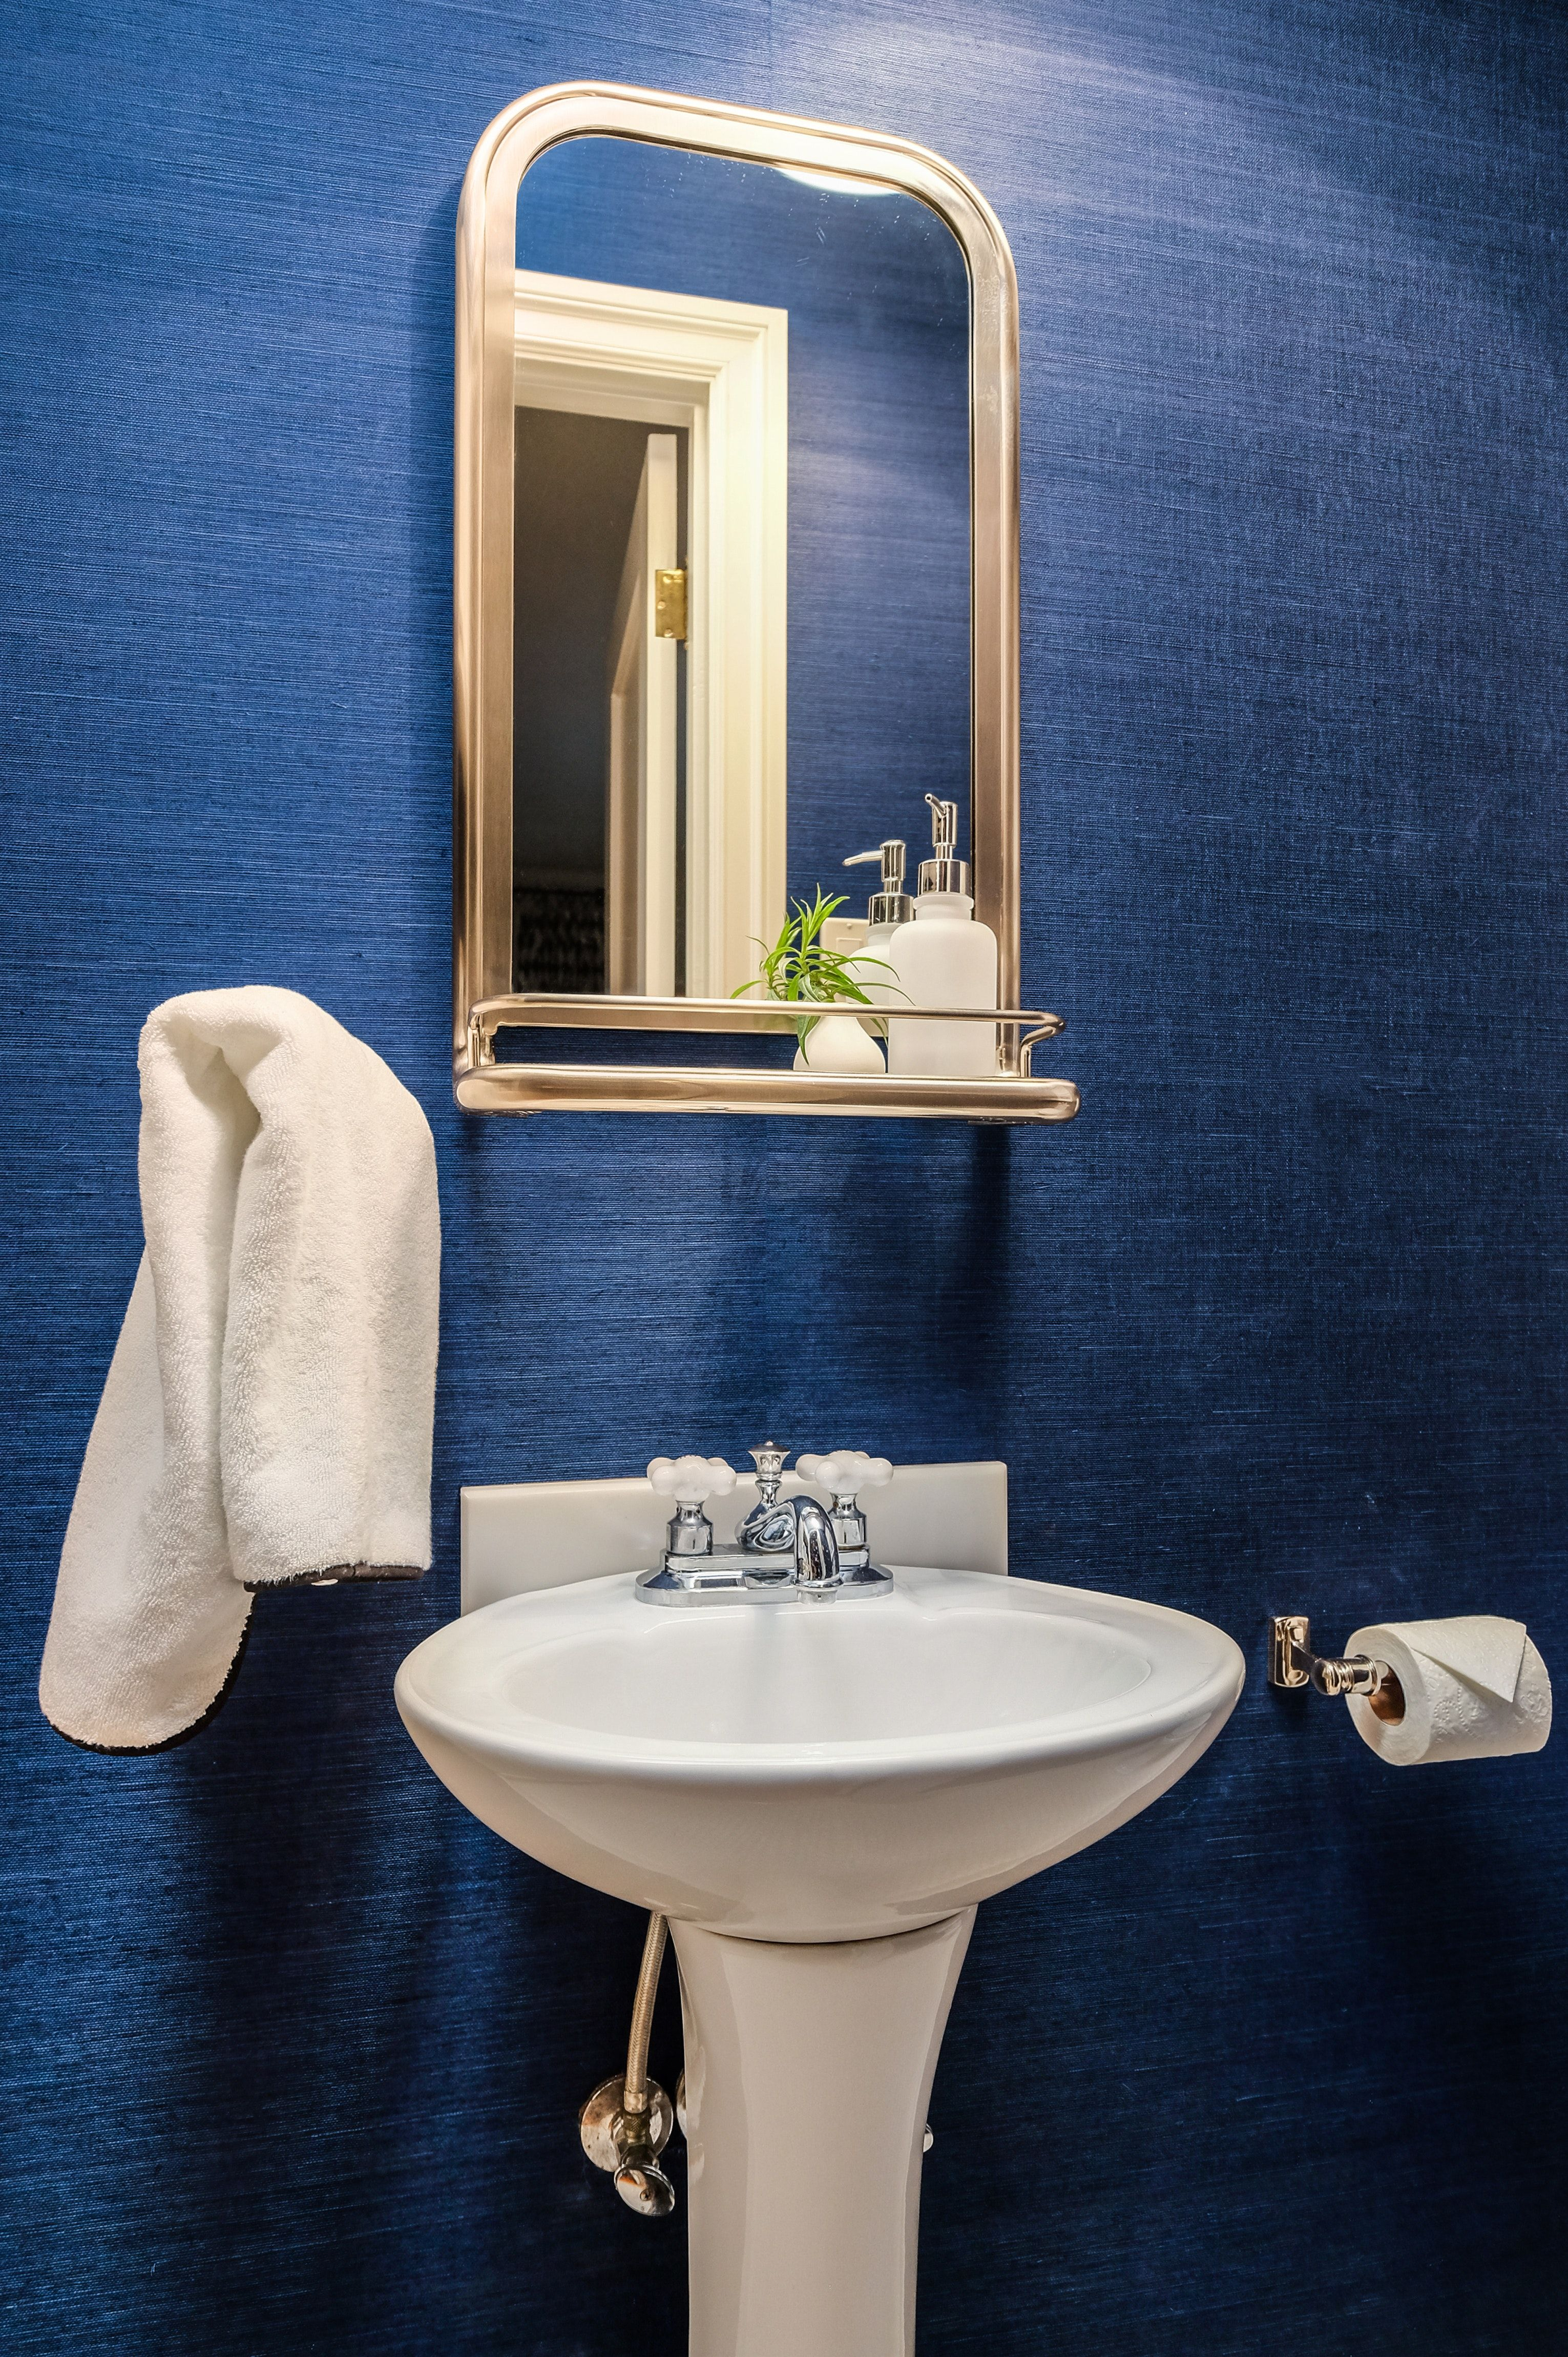 Powder room with navy grasscloth wallpaper. Grasscloth